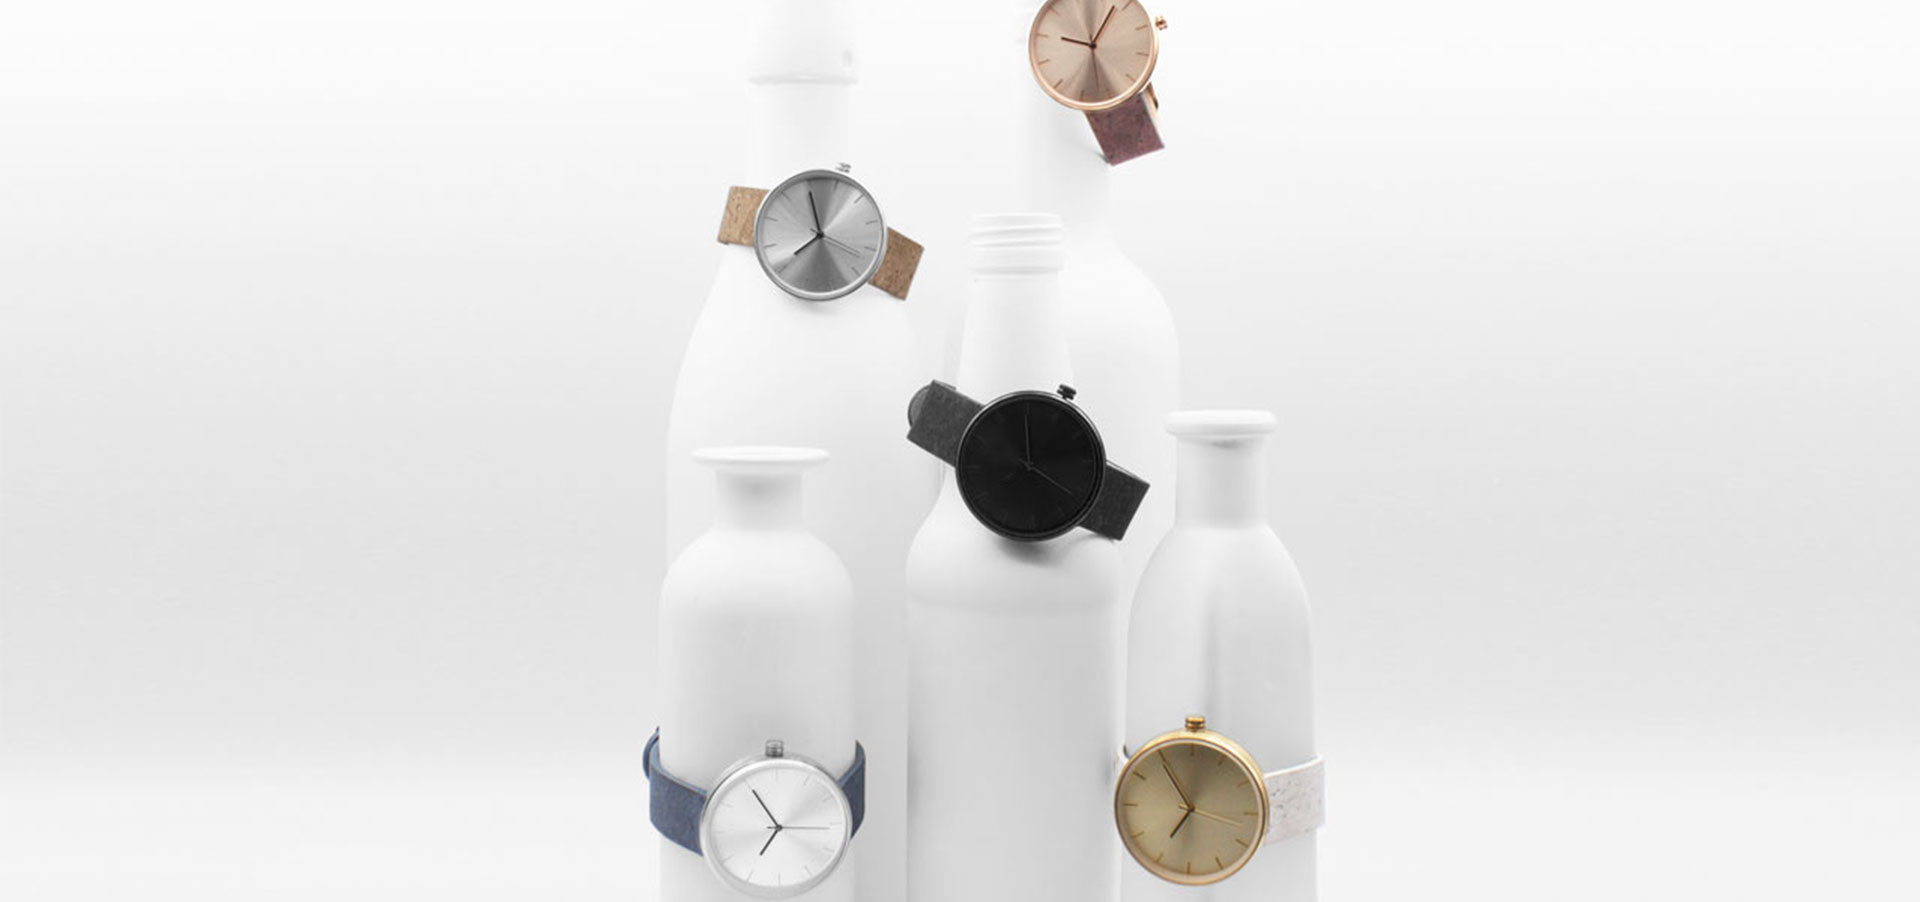 Wristwatches Dyed With Wine Designed By Analog Watch Co.